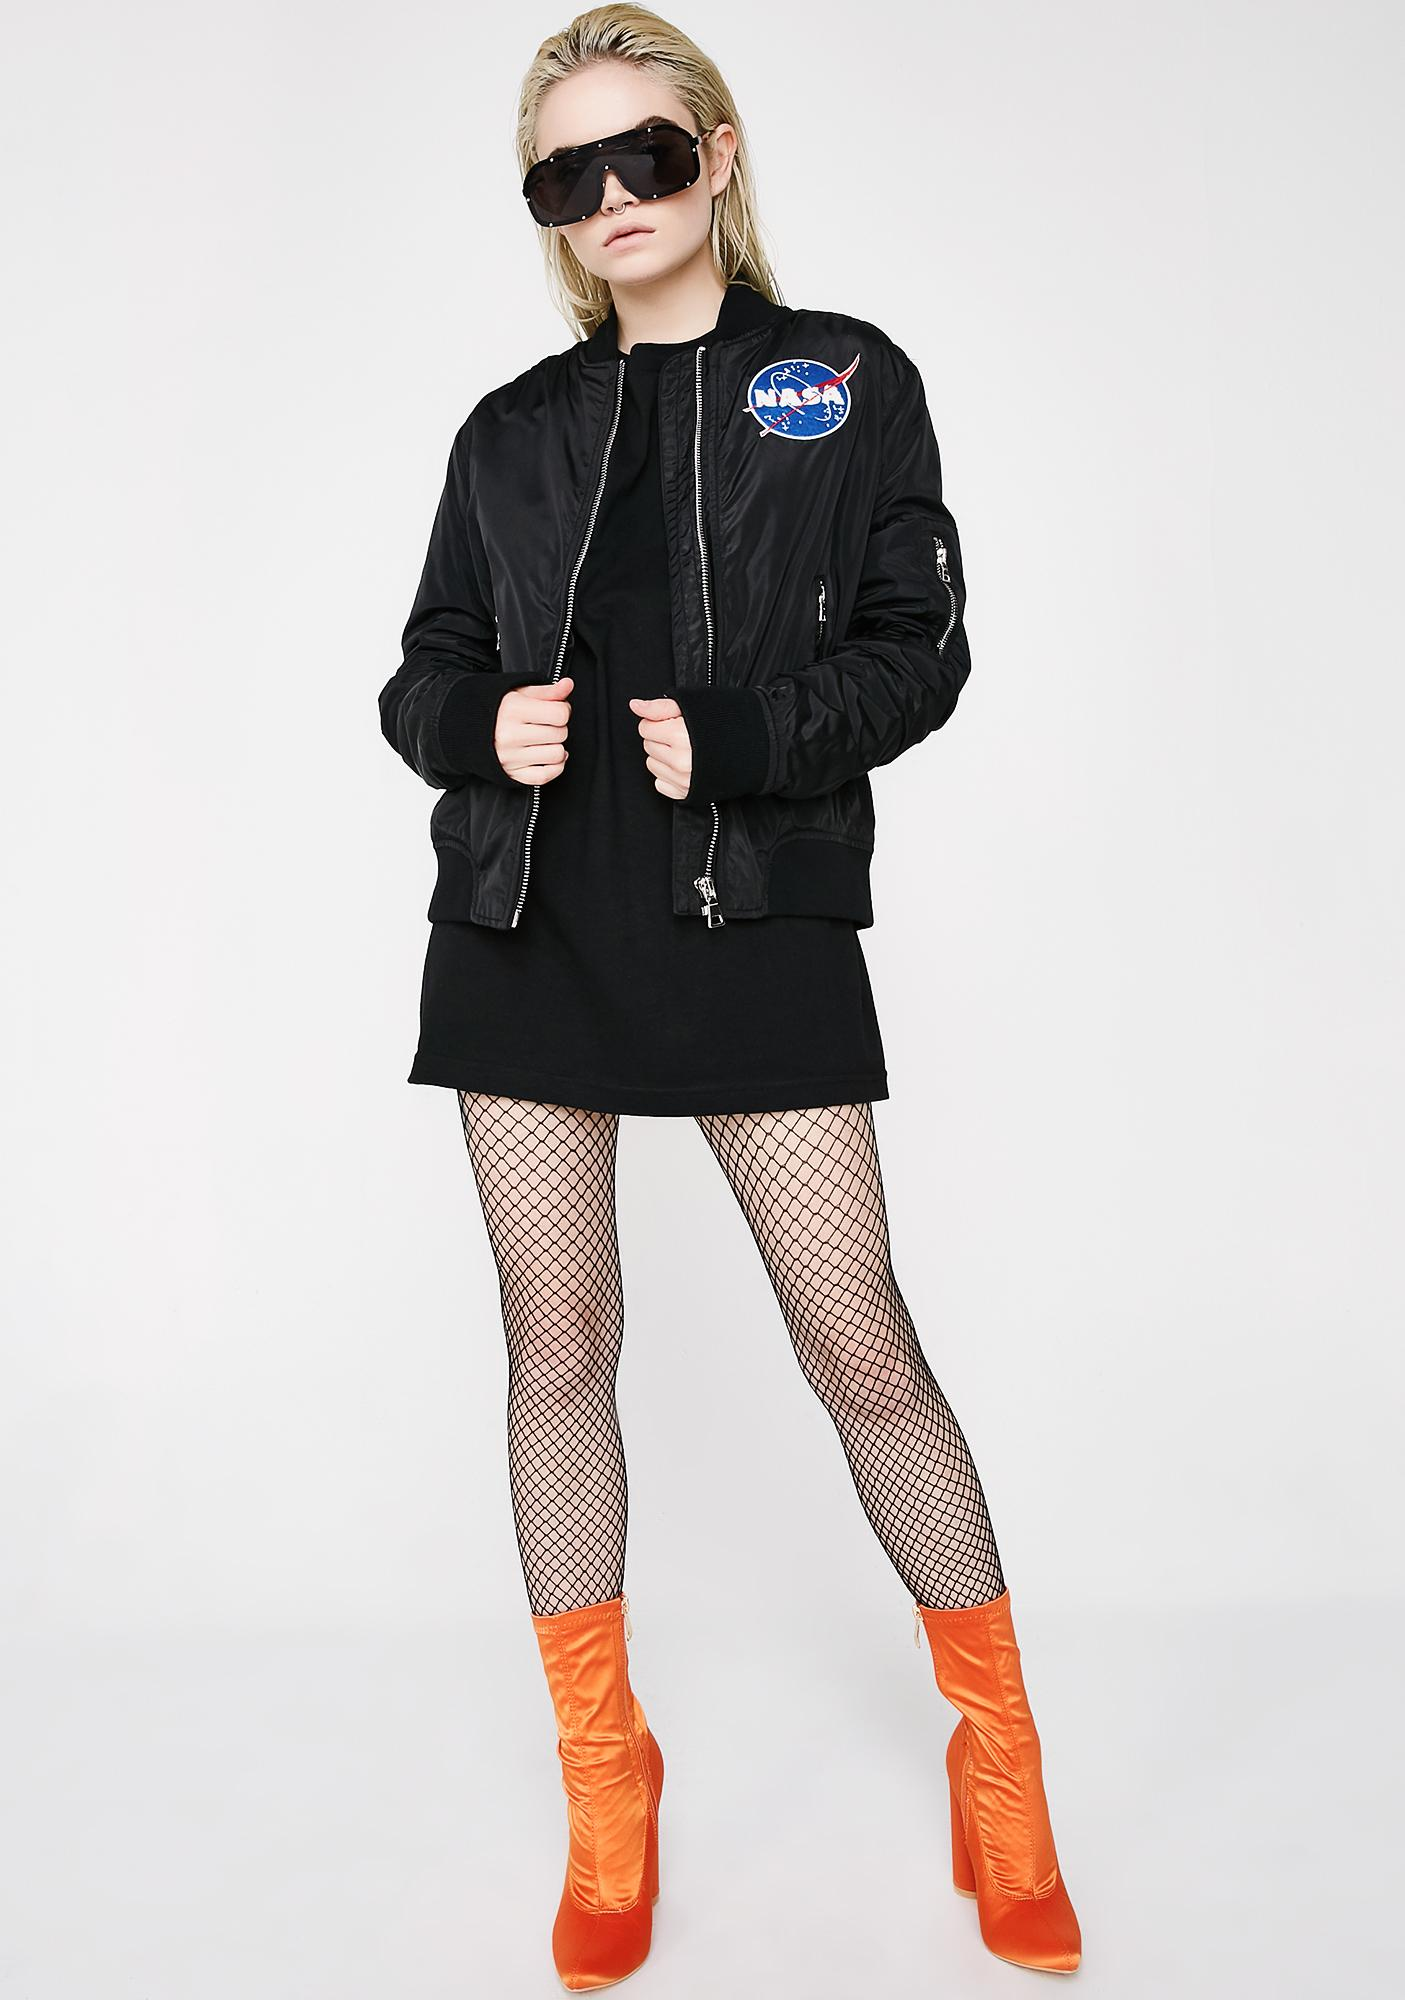 Spacin' Out Bomber Jacket